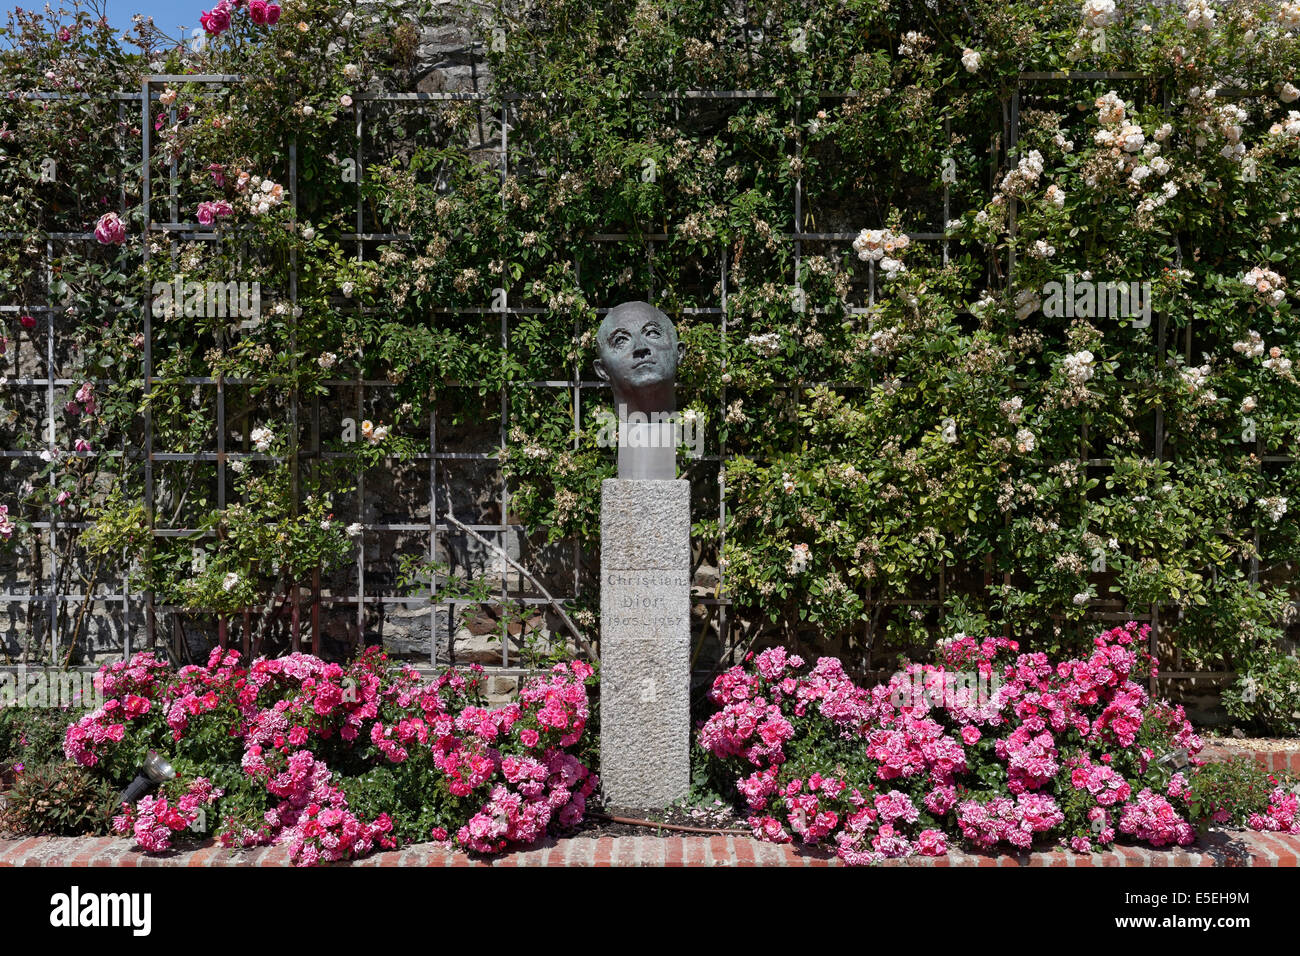 Jardin Dior Granville Rose Garden With A Statue Of Christian Dior Villa Les Rhumbs